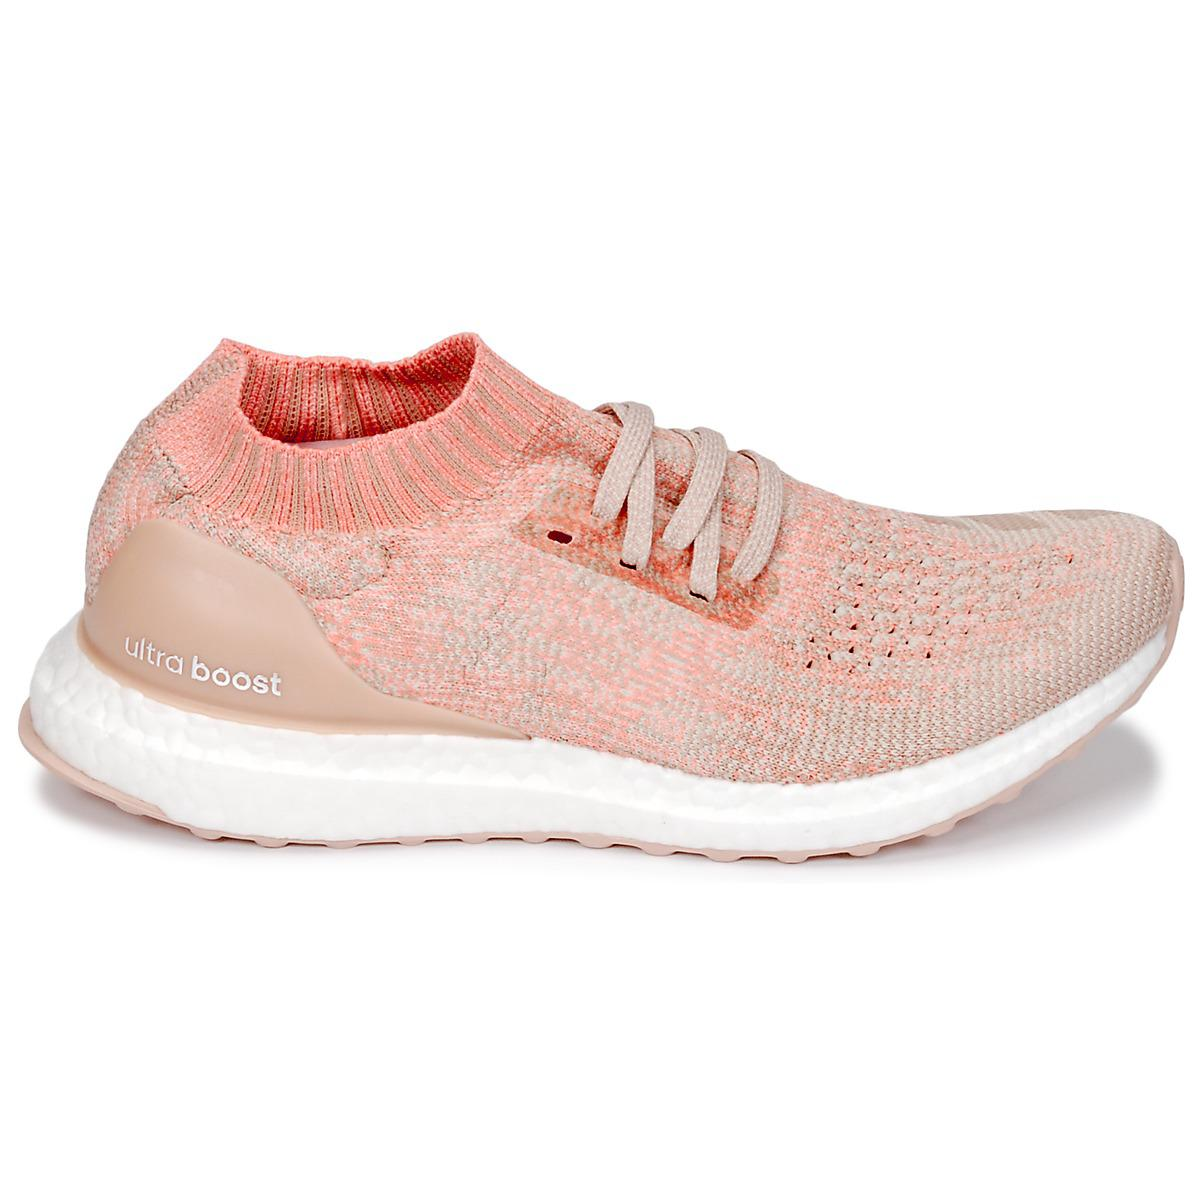 1a6aa0192 ... italy adidas ultraboost uncaged womens running trainers in pink lyst.  view fullscreen a0c36 751d1